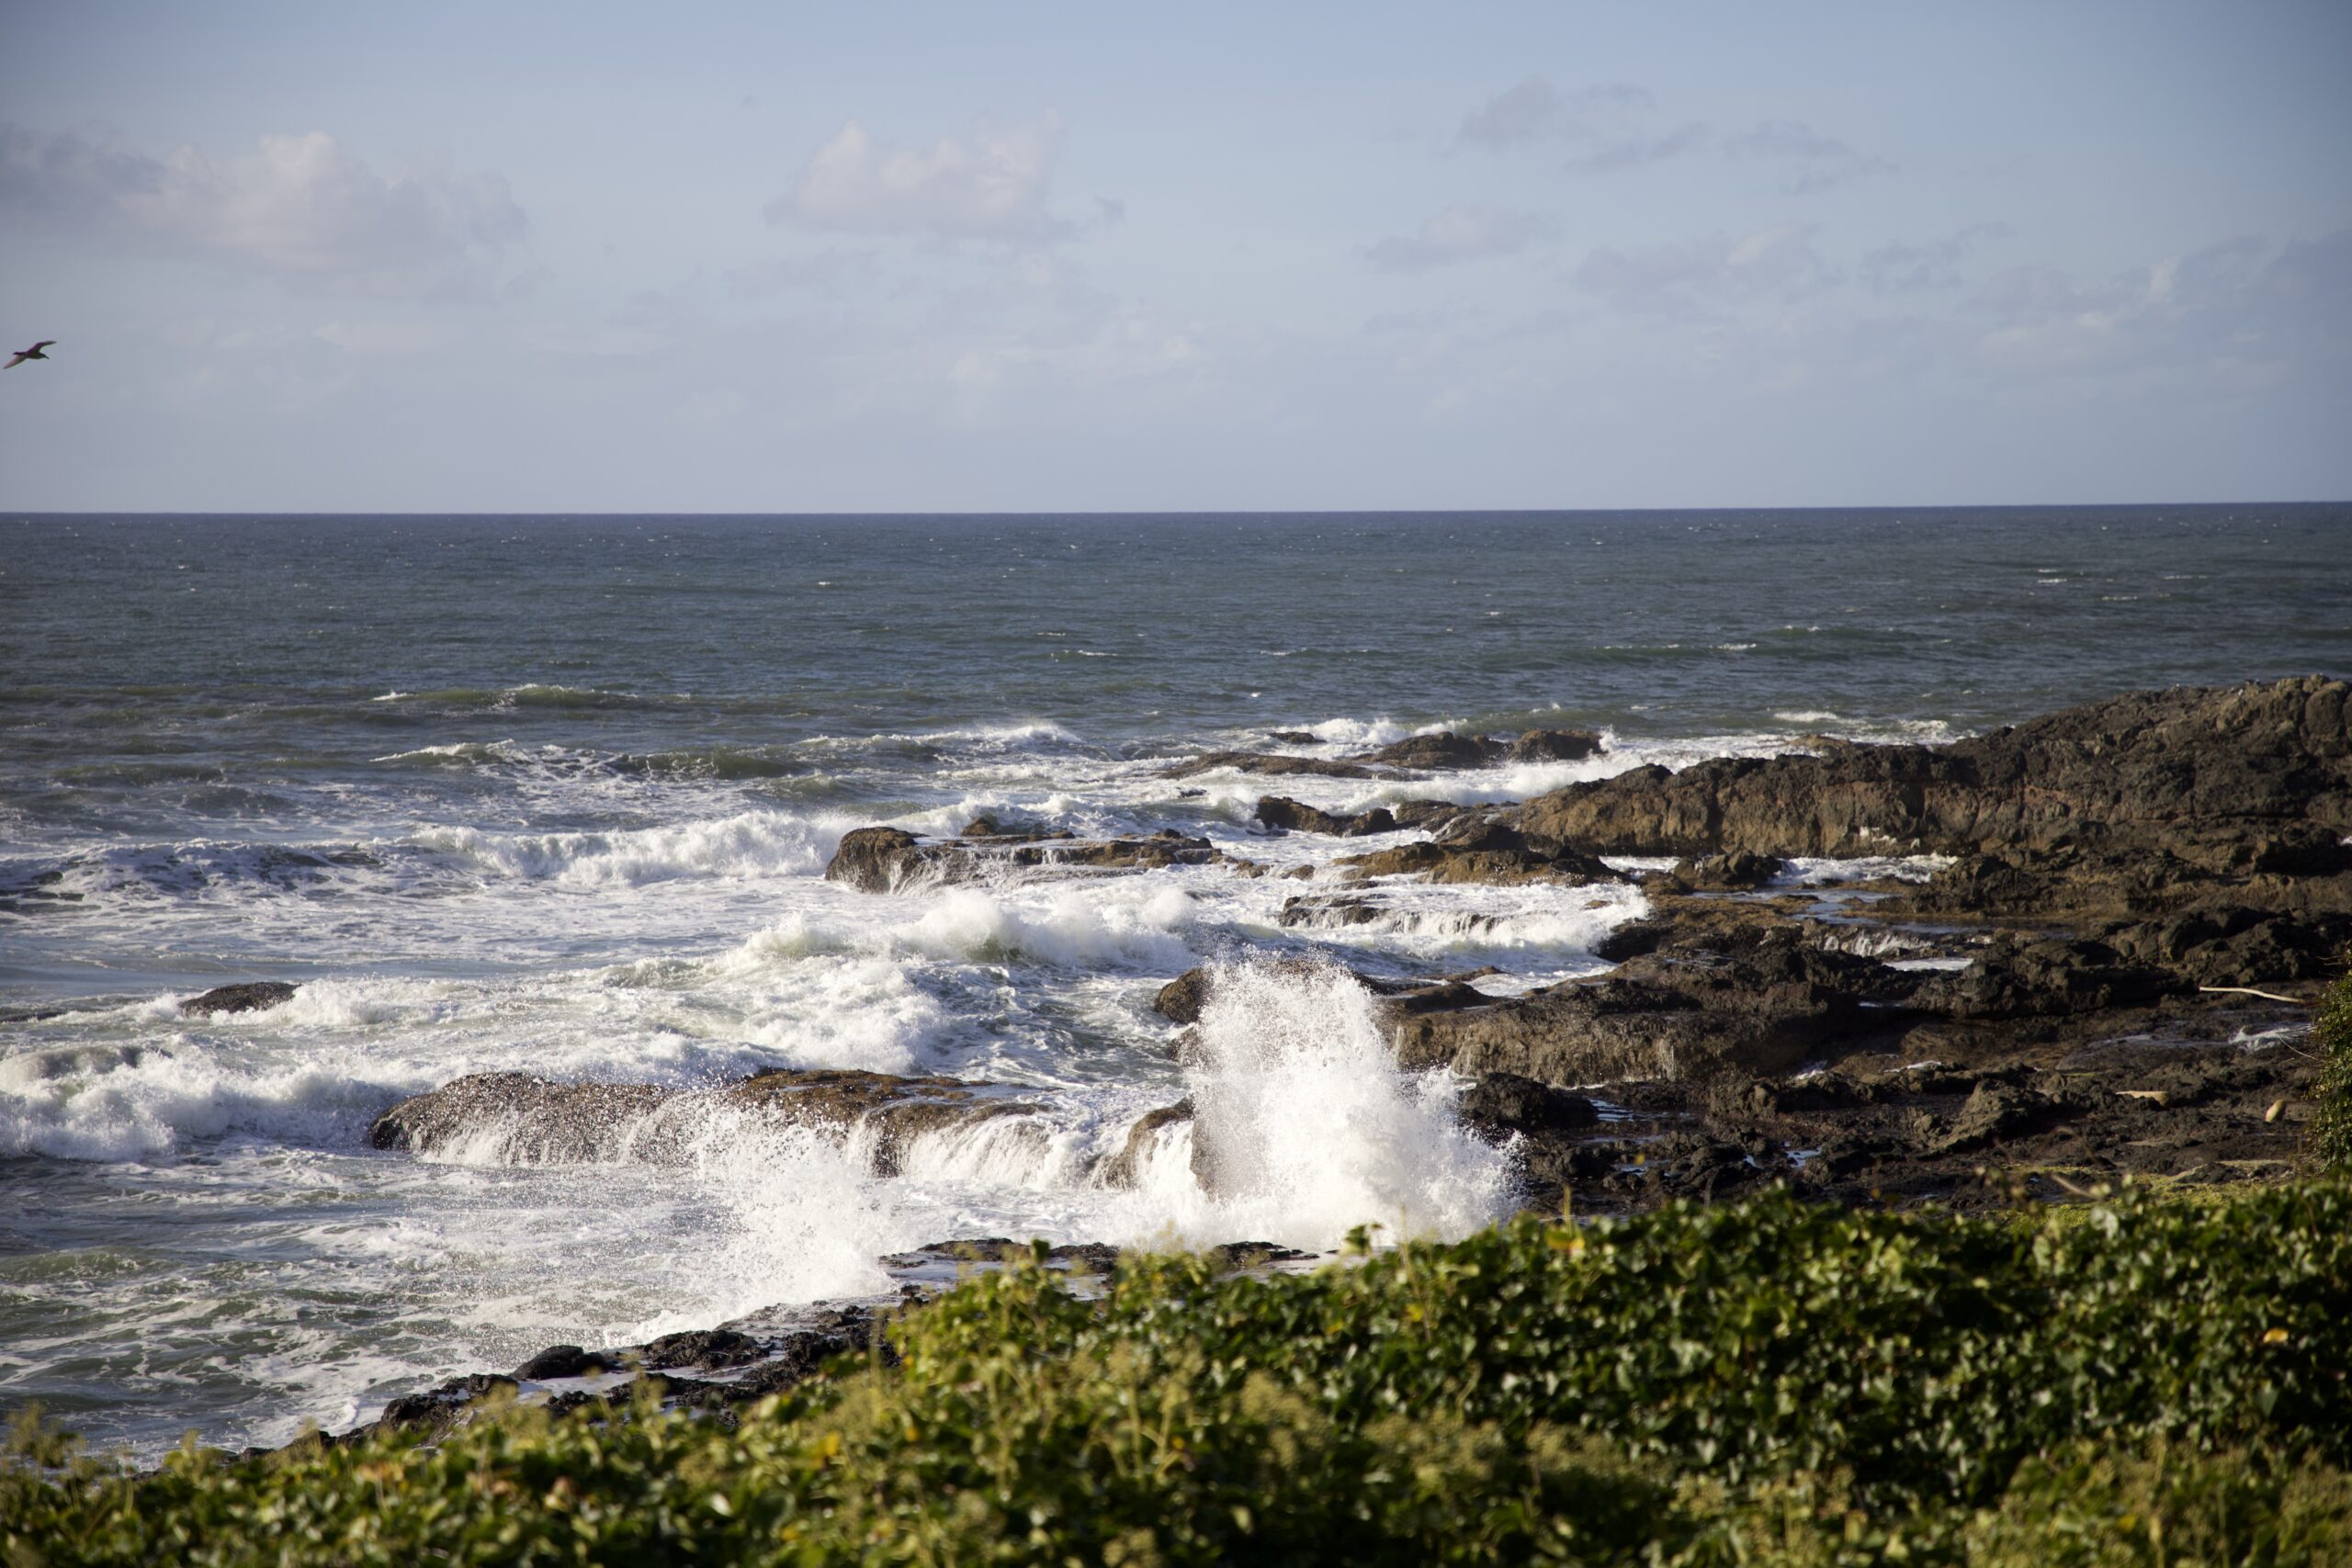 Small waves crashing against a rocky shore